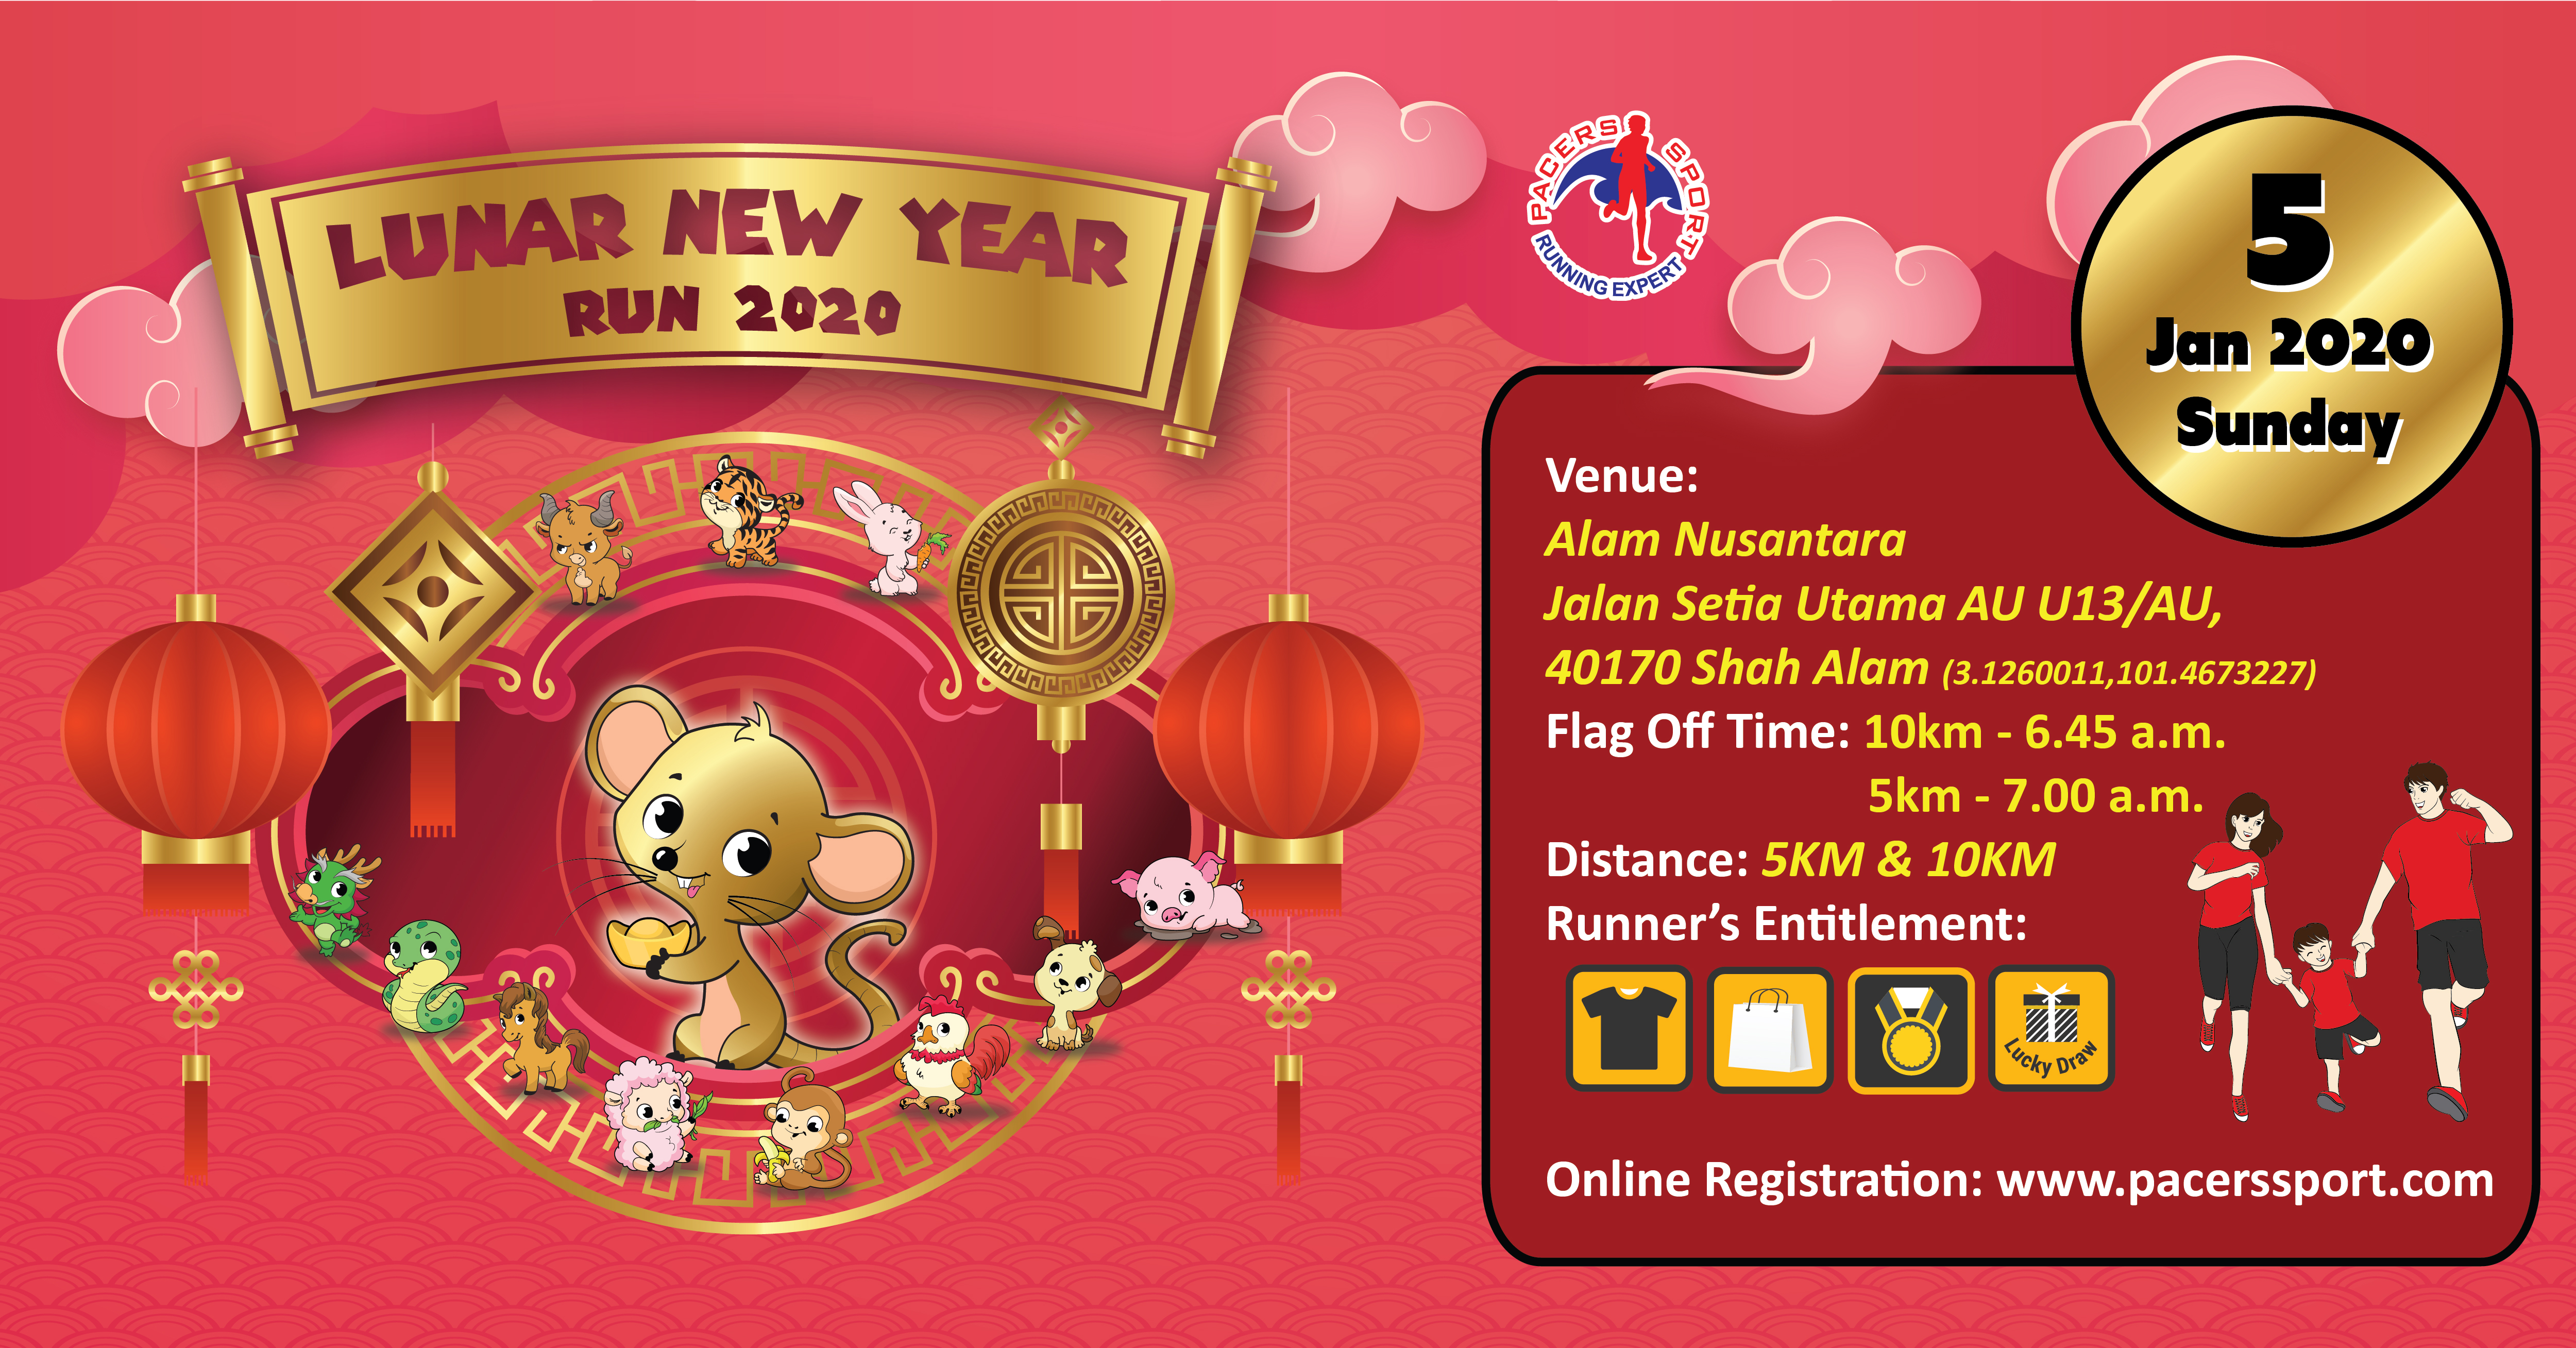 Asian New Year 2020.Lunar New Year Run 2020 Pacers Sport